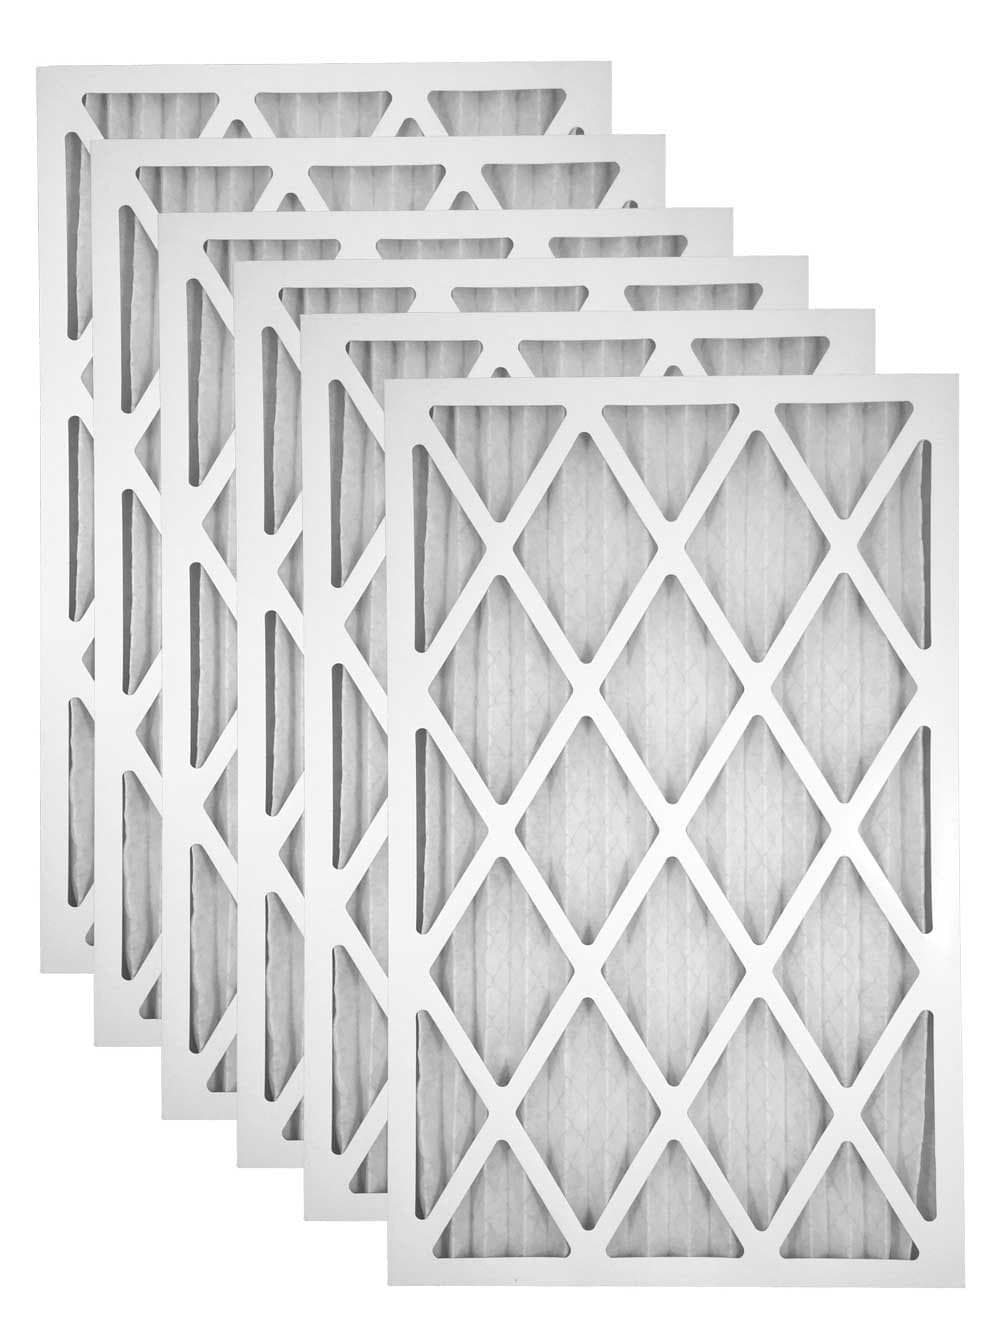 10x20x2 Merv 8 AC Furnace Filter - Case of 6